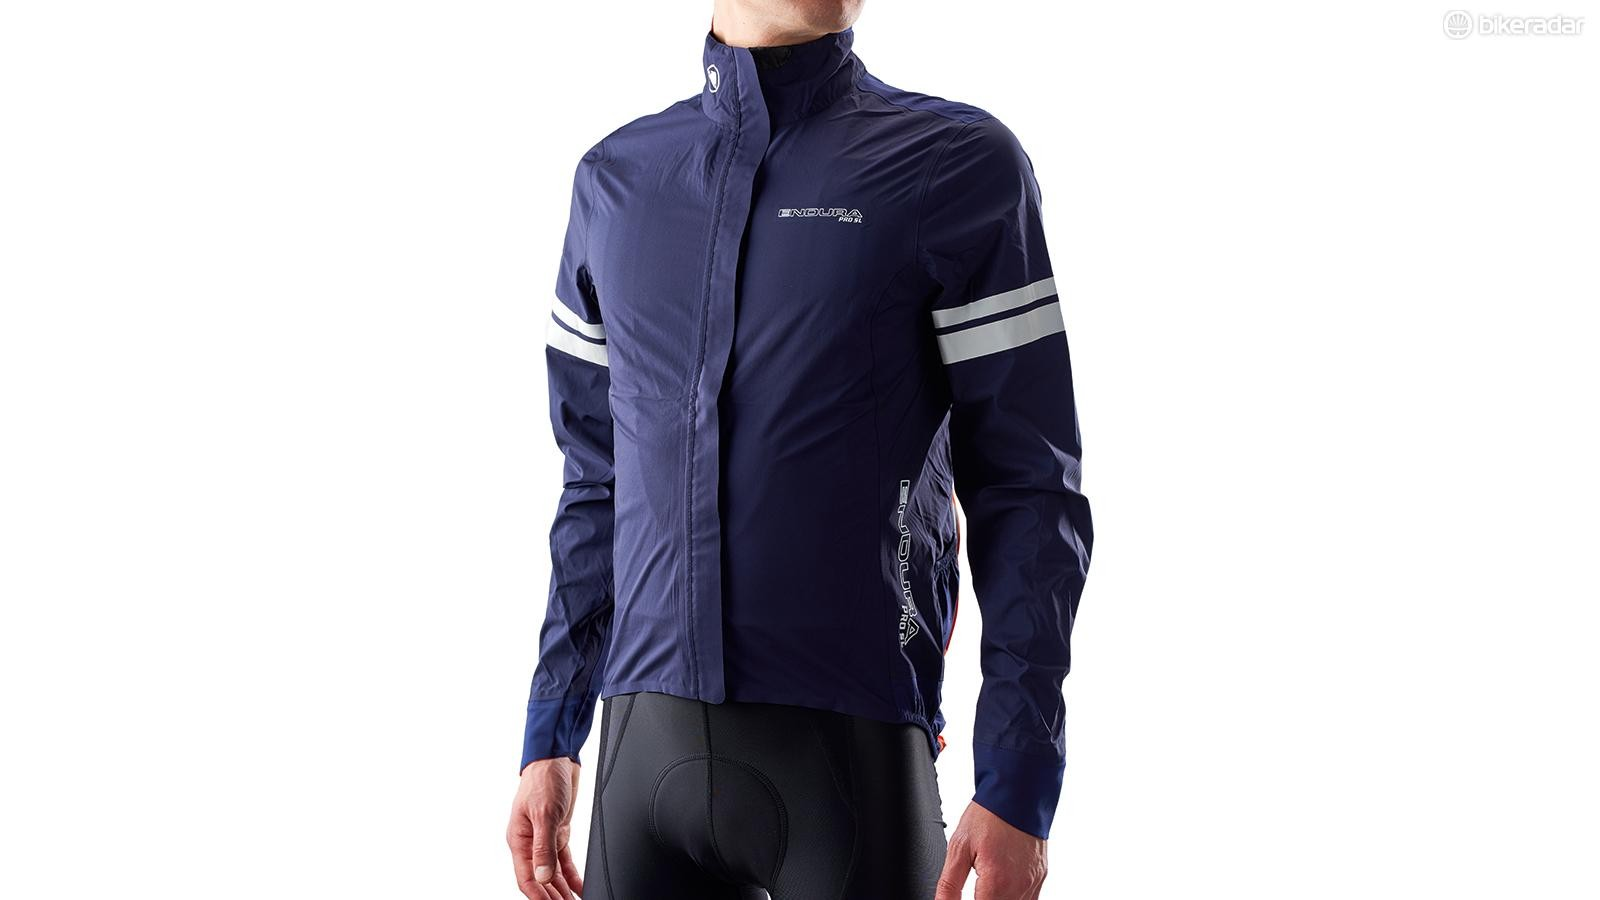 7875cdad810 The best waterproof jackets for cycling in 2019